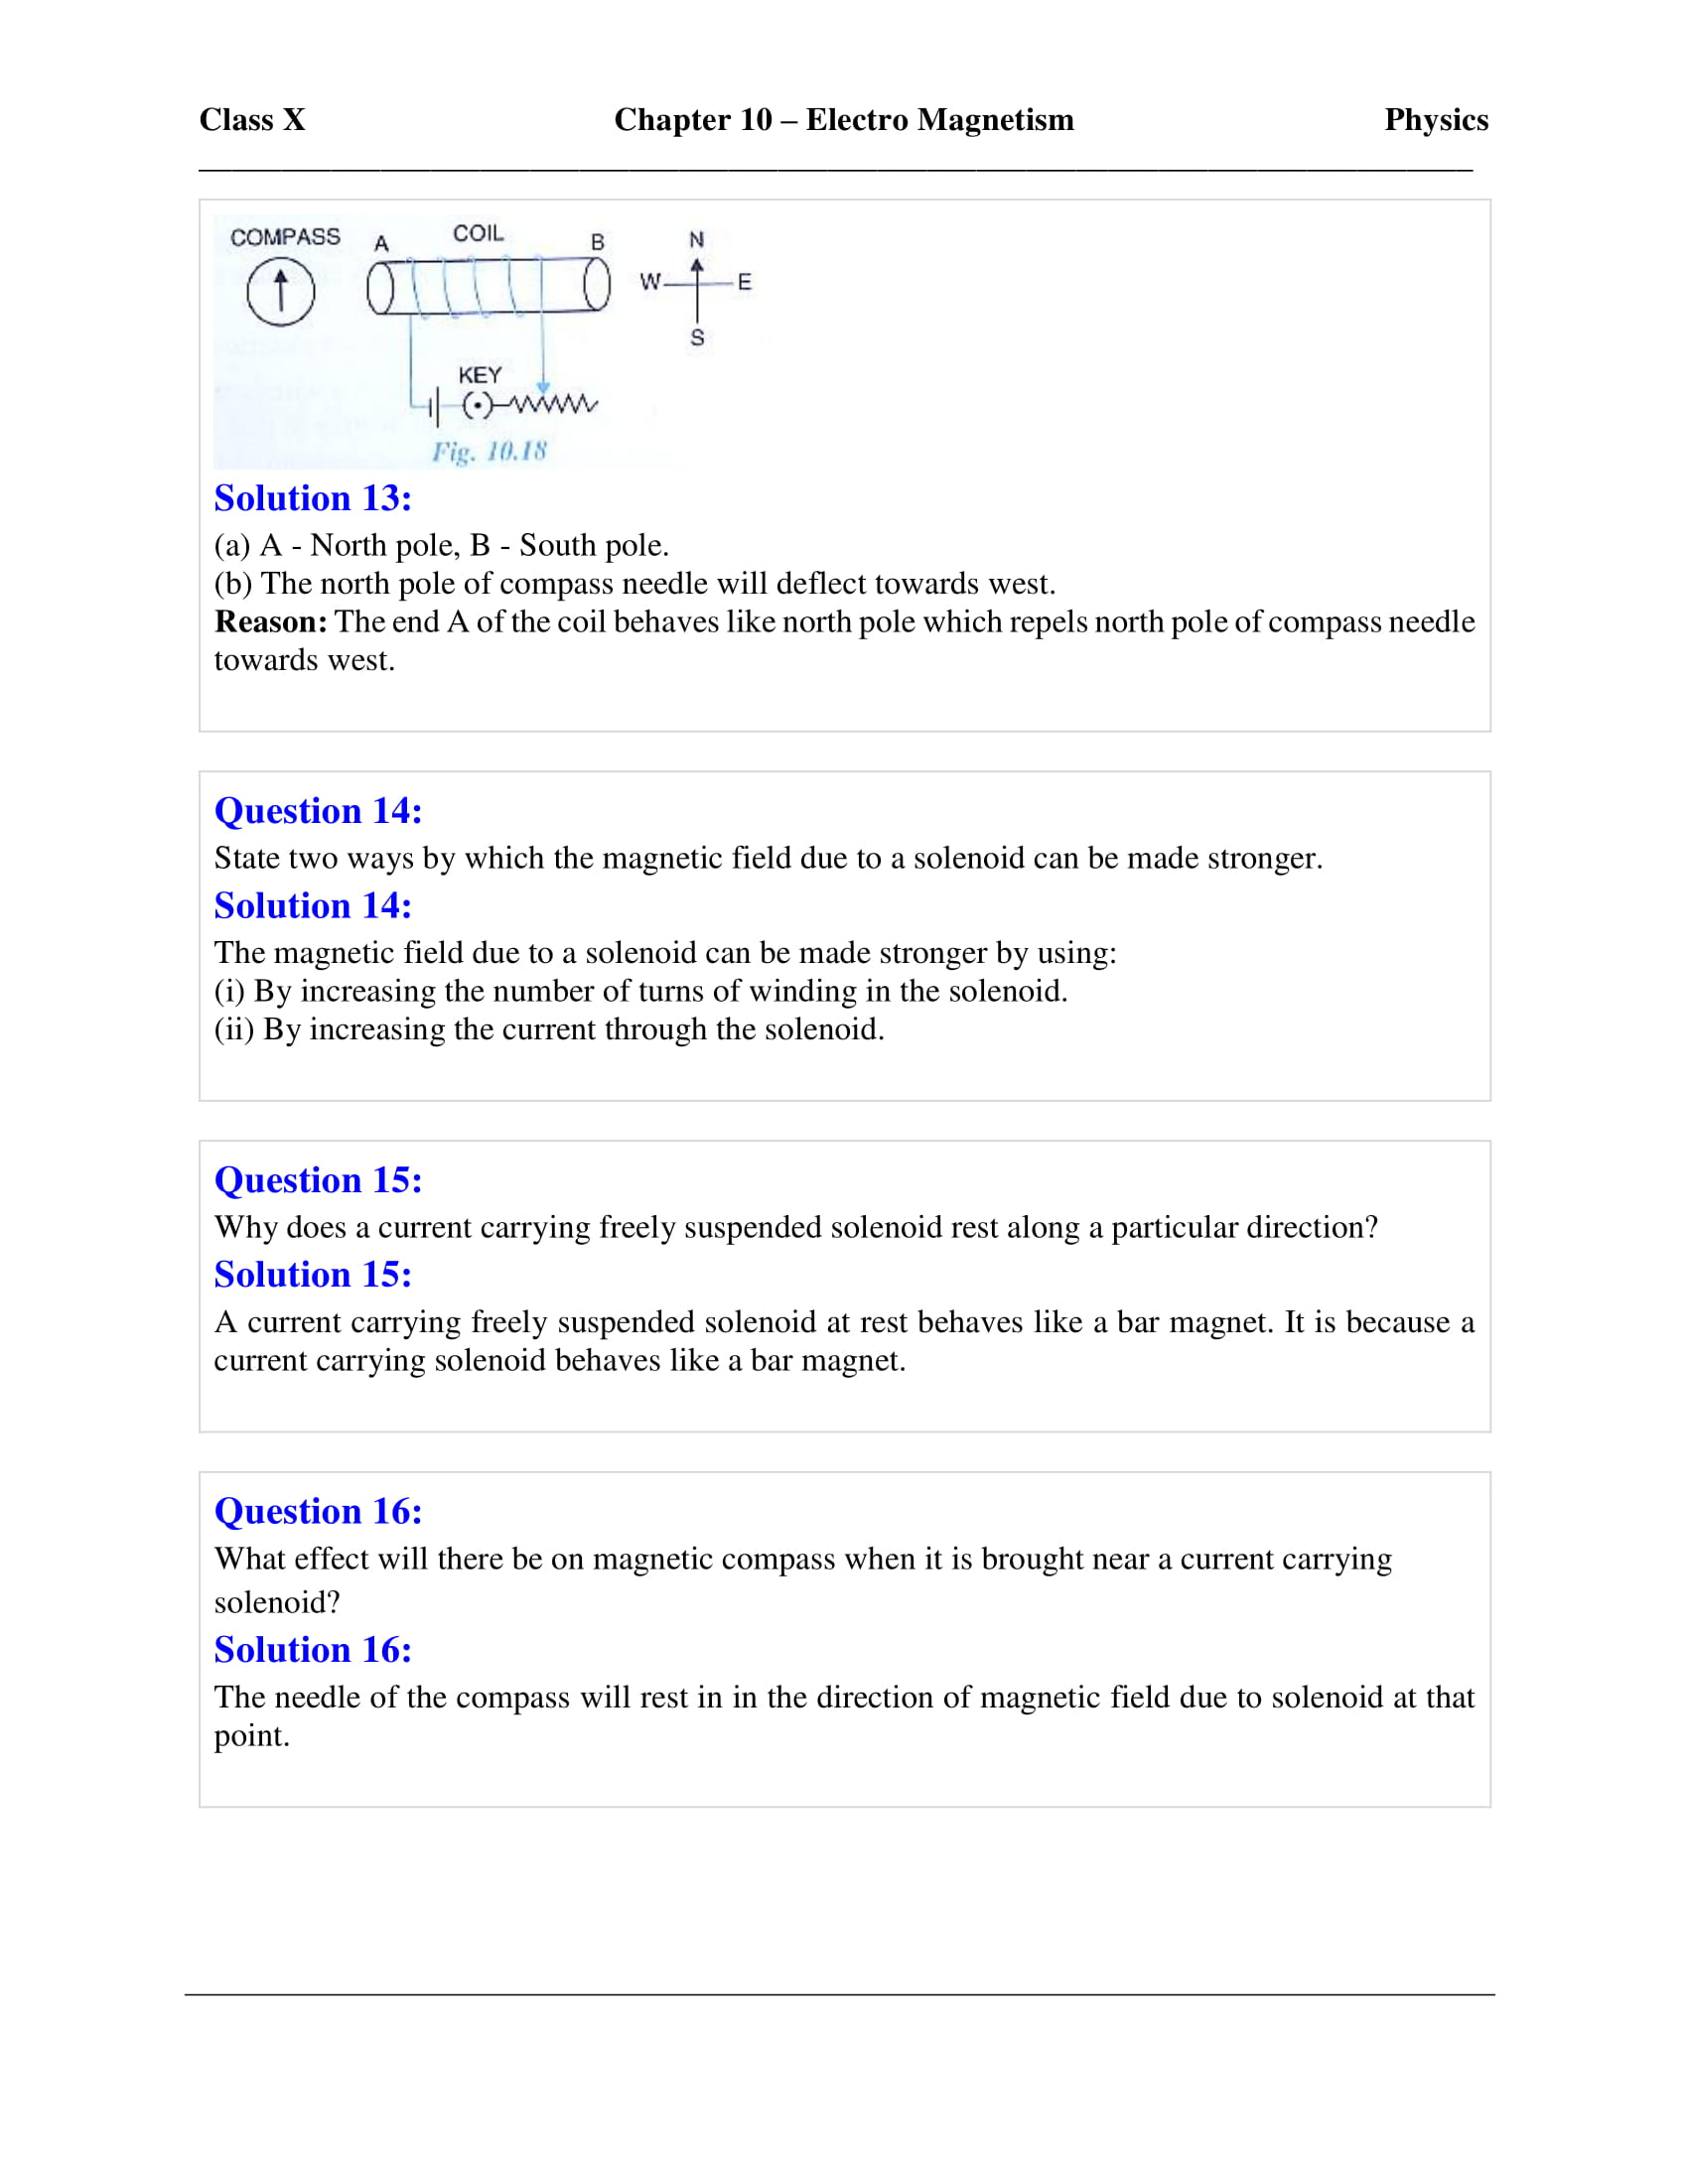 icse-selina-physics-solutions-class-10-chapter-10-electro-magnetism-06